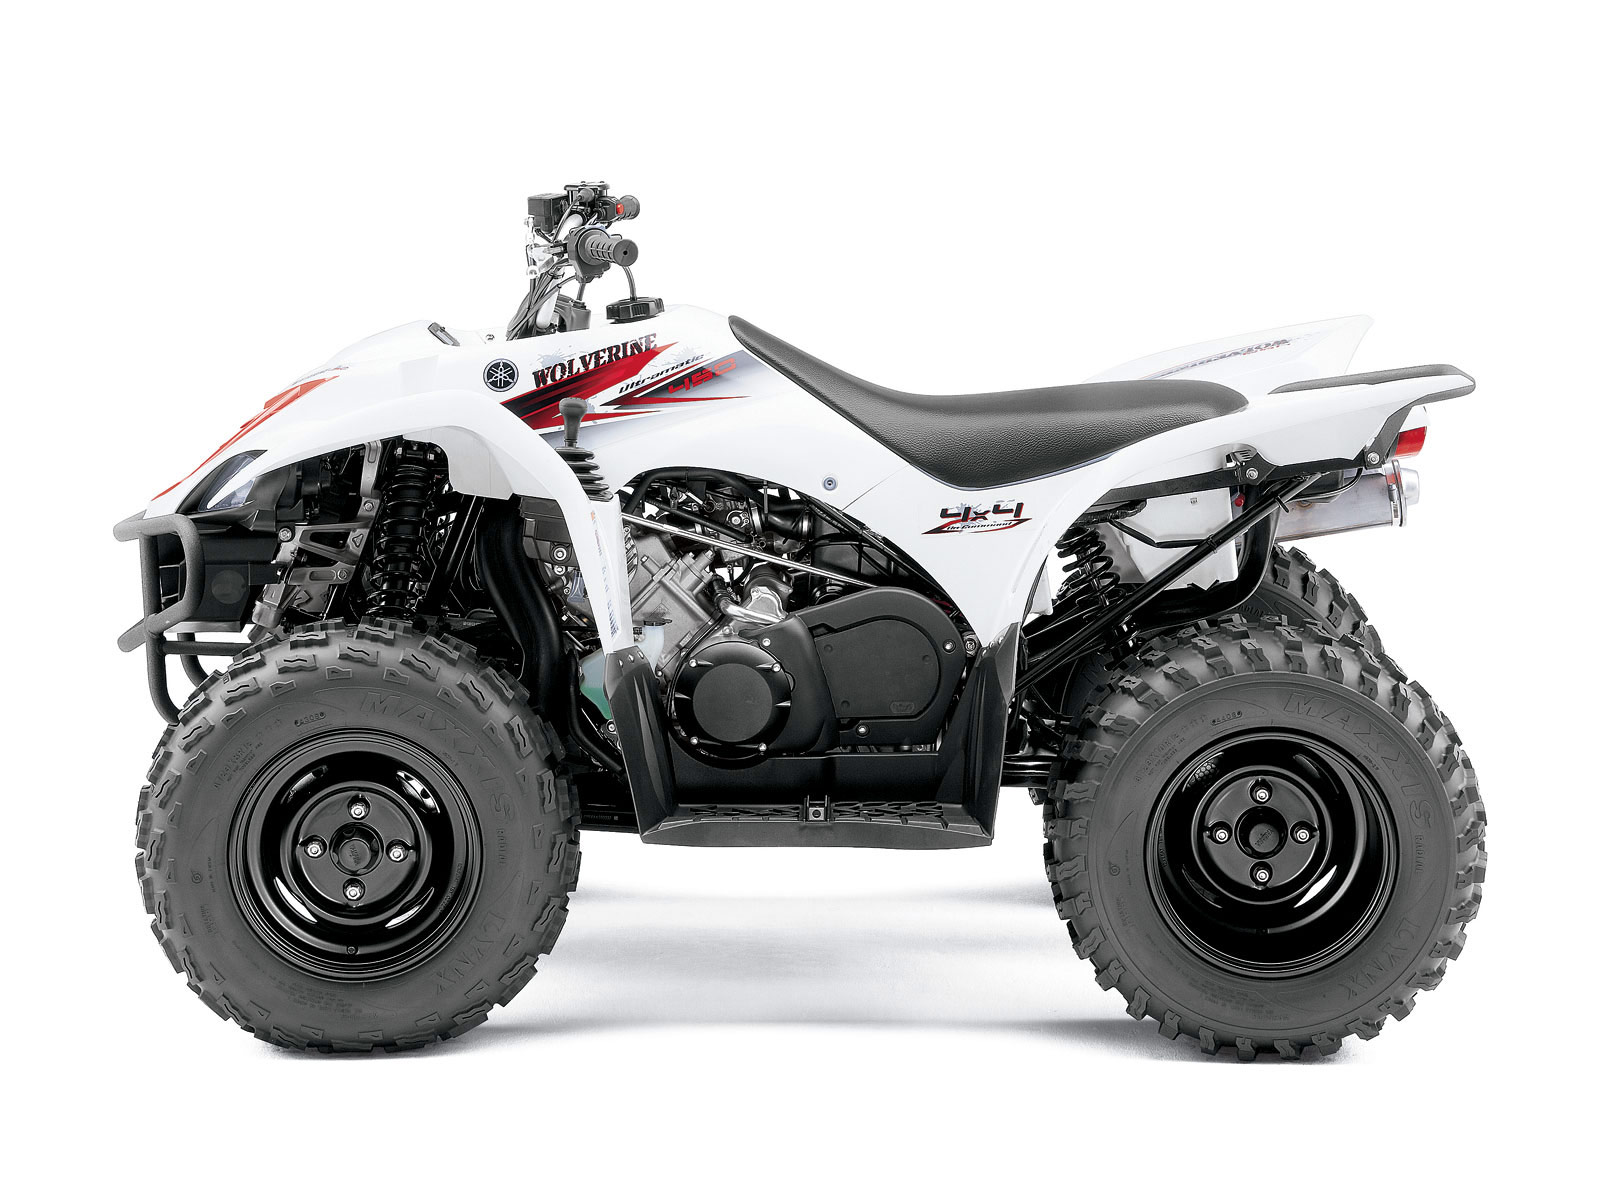 2010-YAMAHA-Wolverine-450-4x4-ATV-wallpapers_3